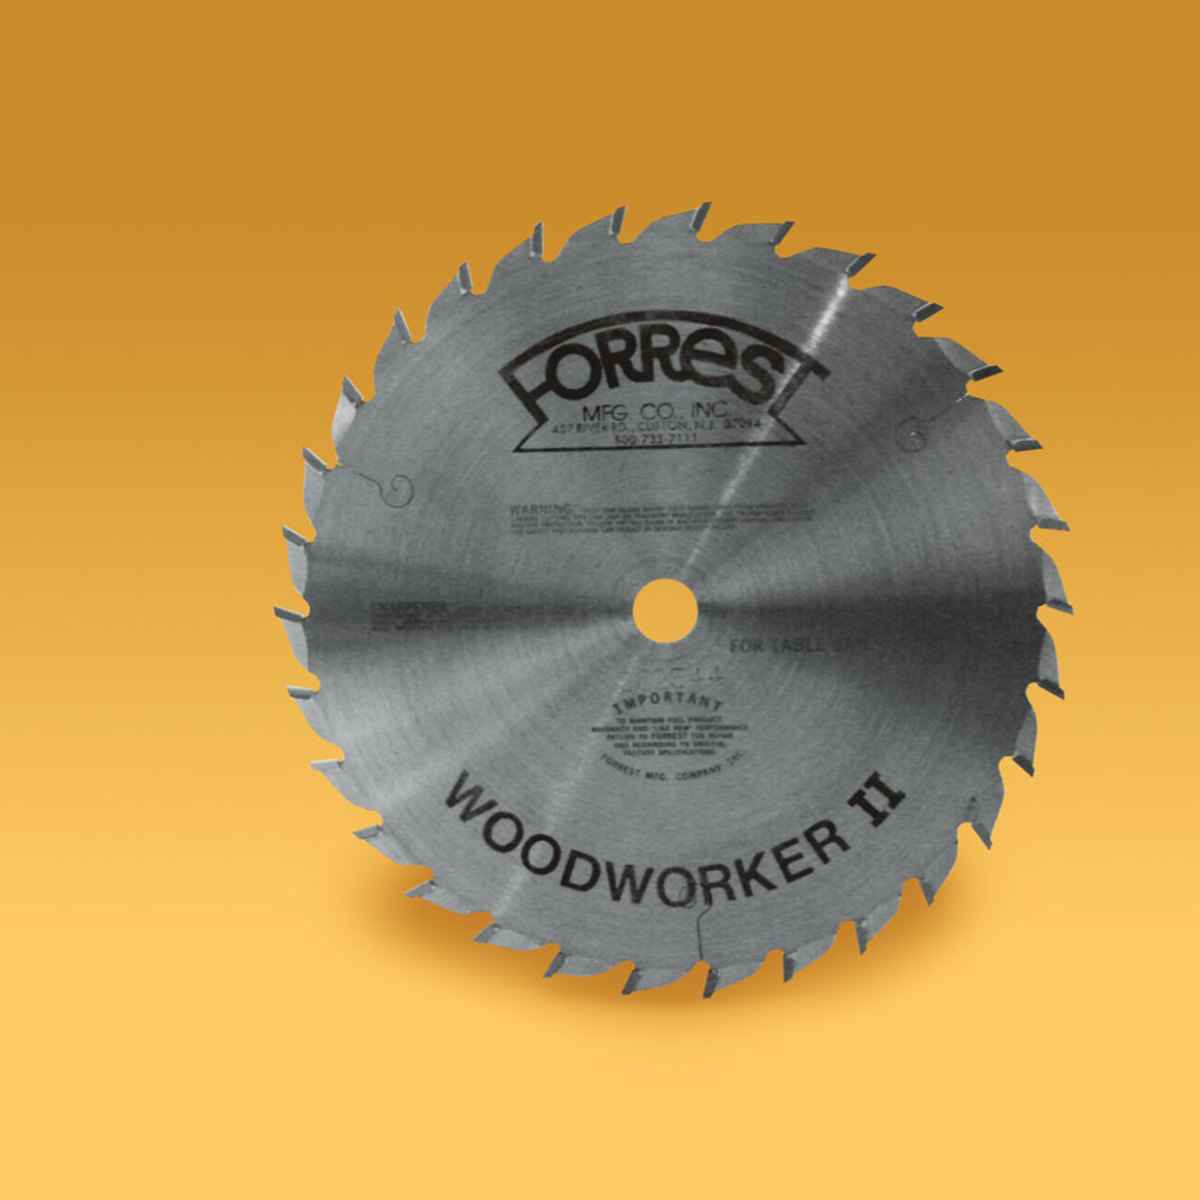 Forrest's 20-tooth blade